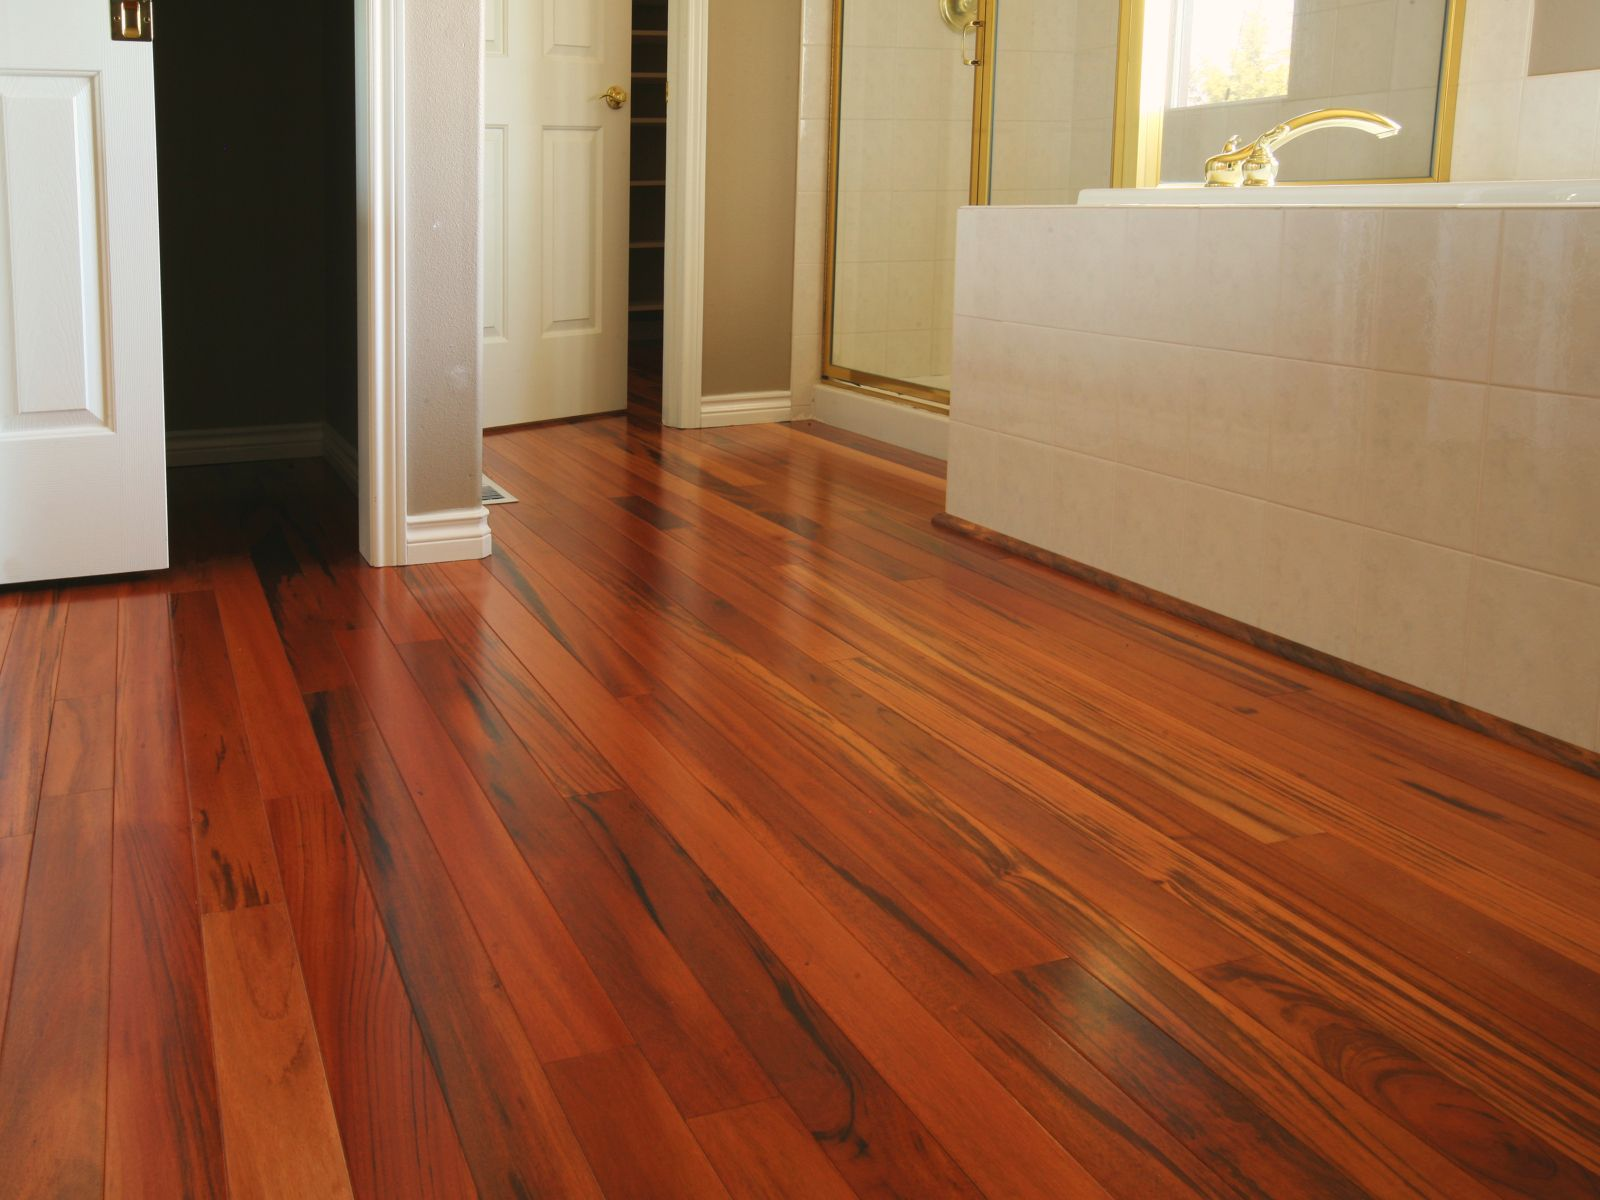 What Is The Price Of Hardwood Flooring Bamboo wood